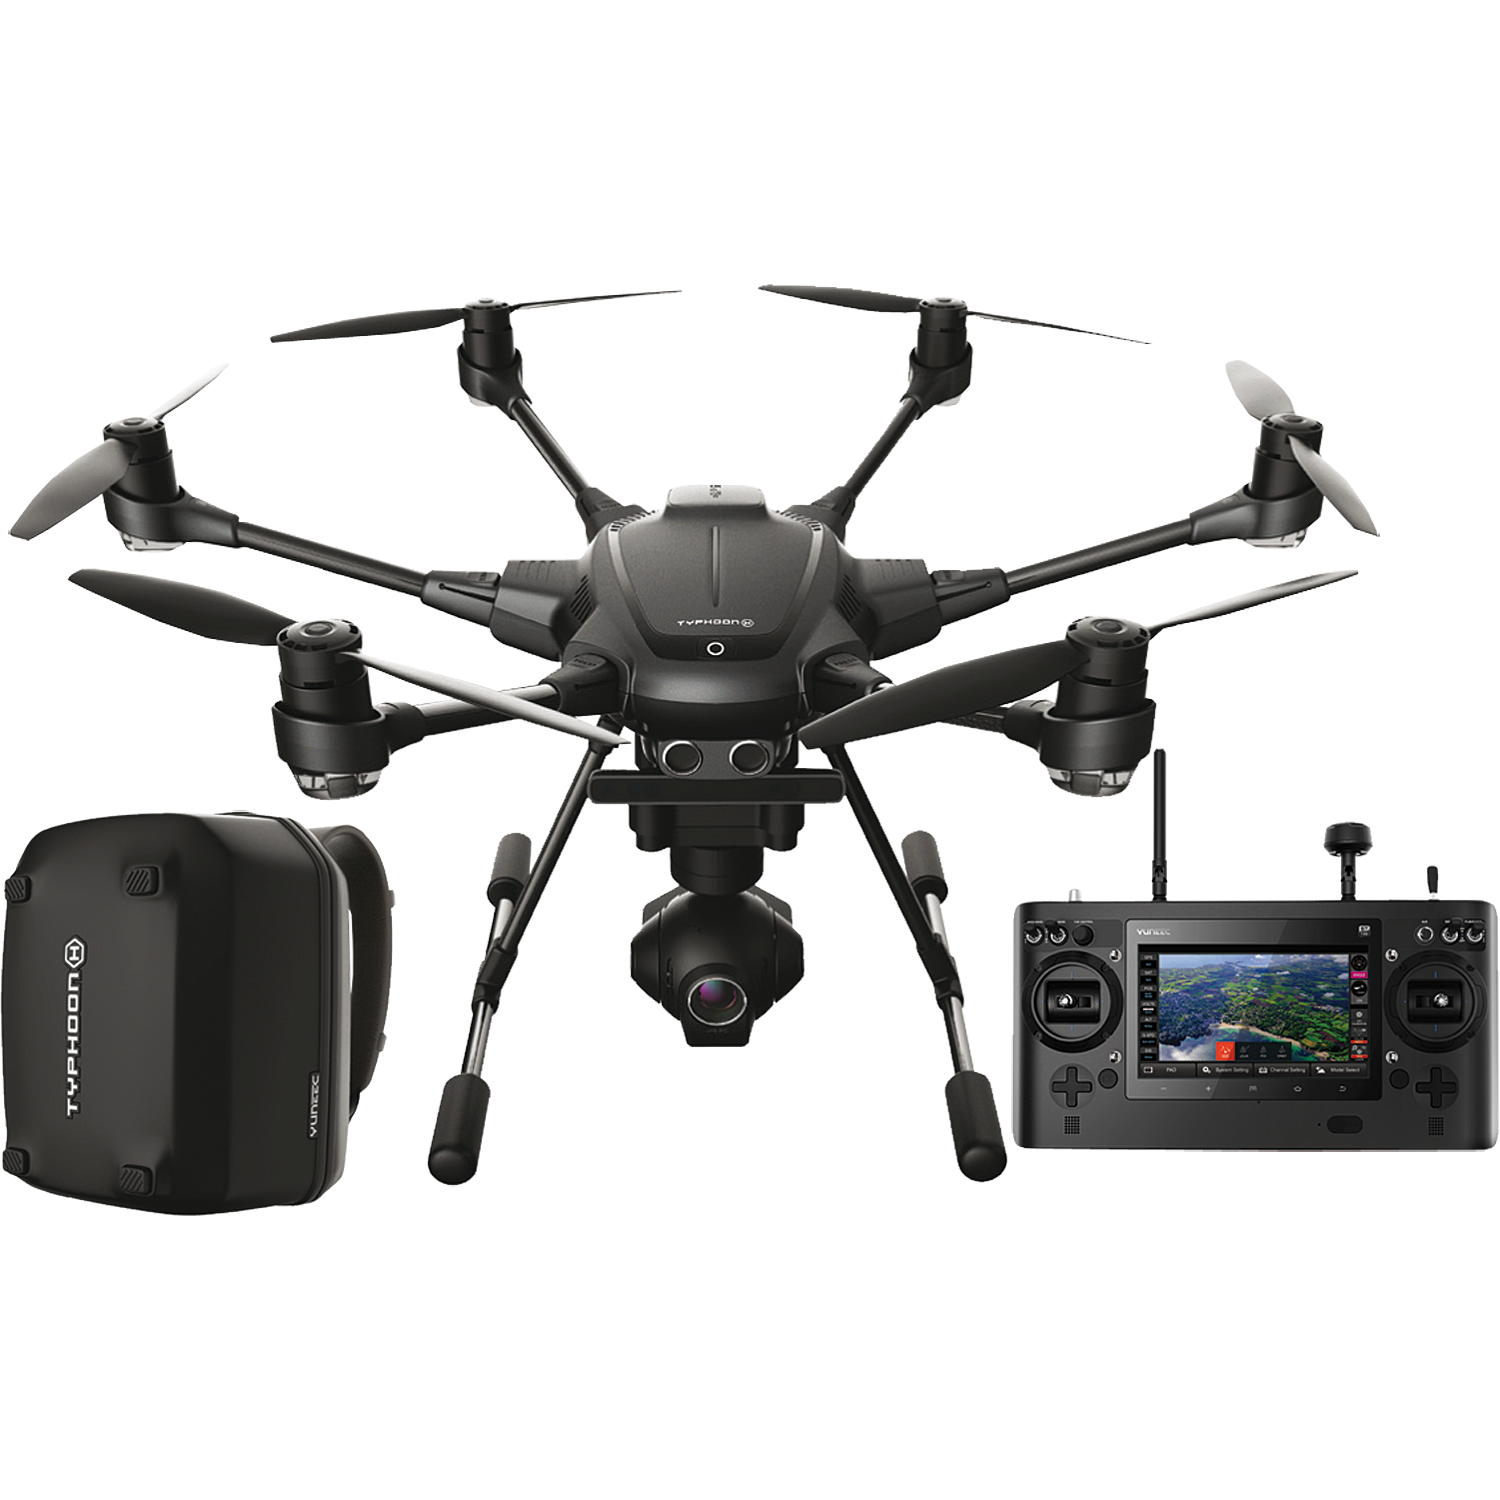 real drone with Yuneec Typhoon H Professionnel on Yuneec Typhoon H Professionnel moreover Storm Type A Racing Drone further Amherst College also Trilobite together with 13 Amusing Photos Of Lego Star Wars Characters.